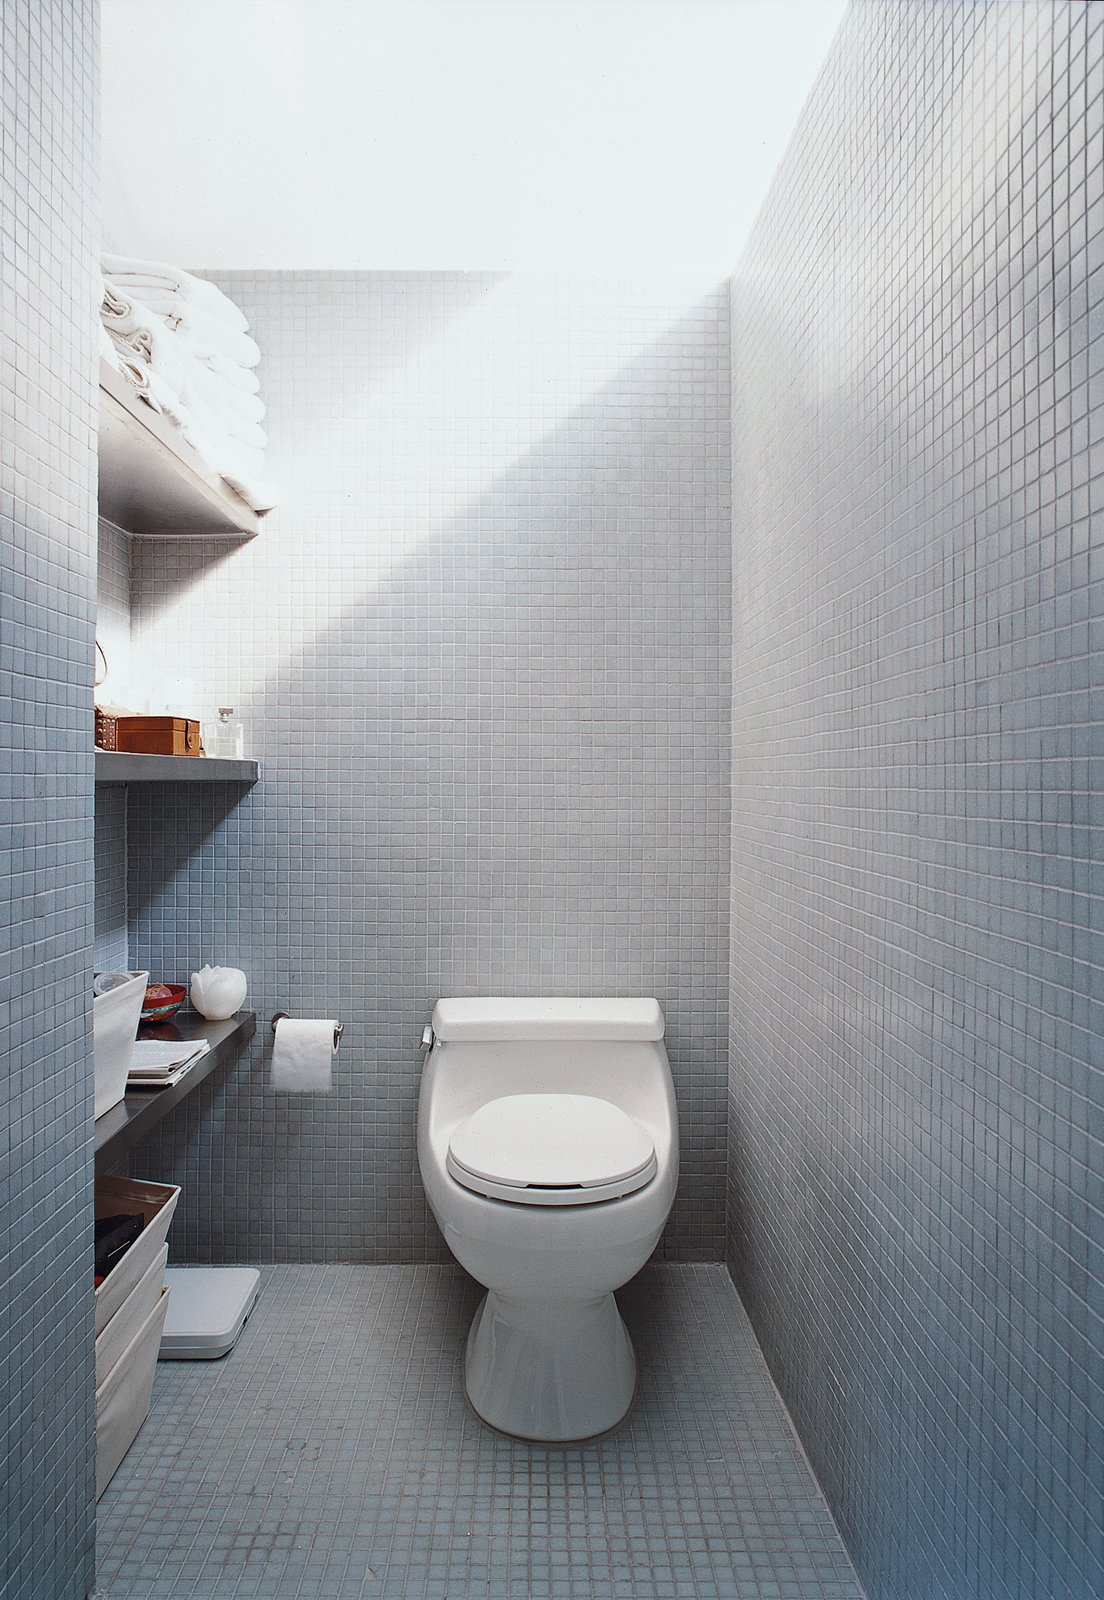 The LV prototype's bathroom shows how buyers can vary finish levels according to budget.  Photo 8 of 10 in All You Need Is LV